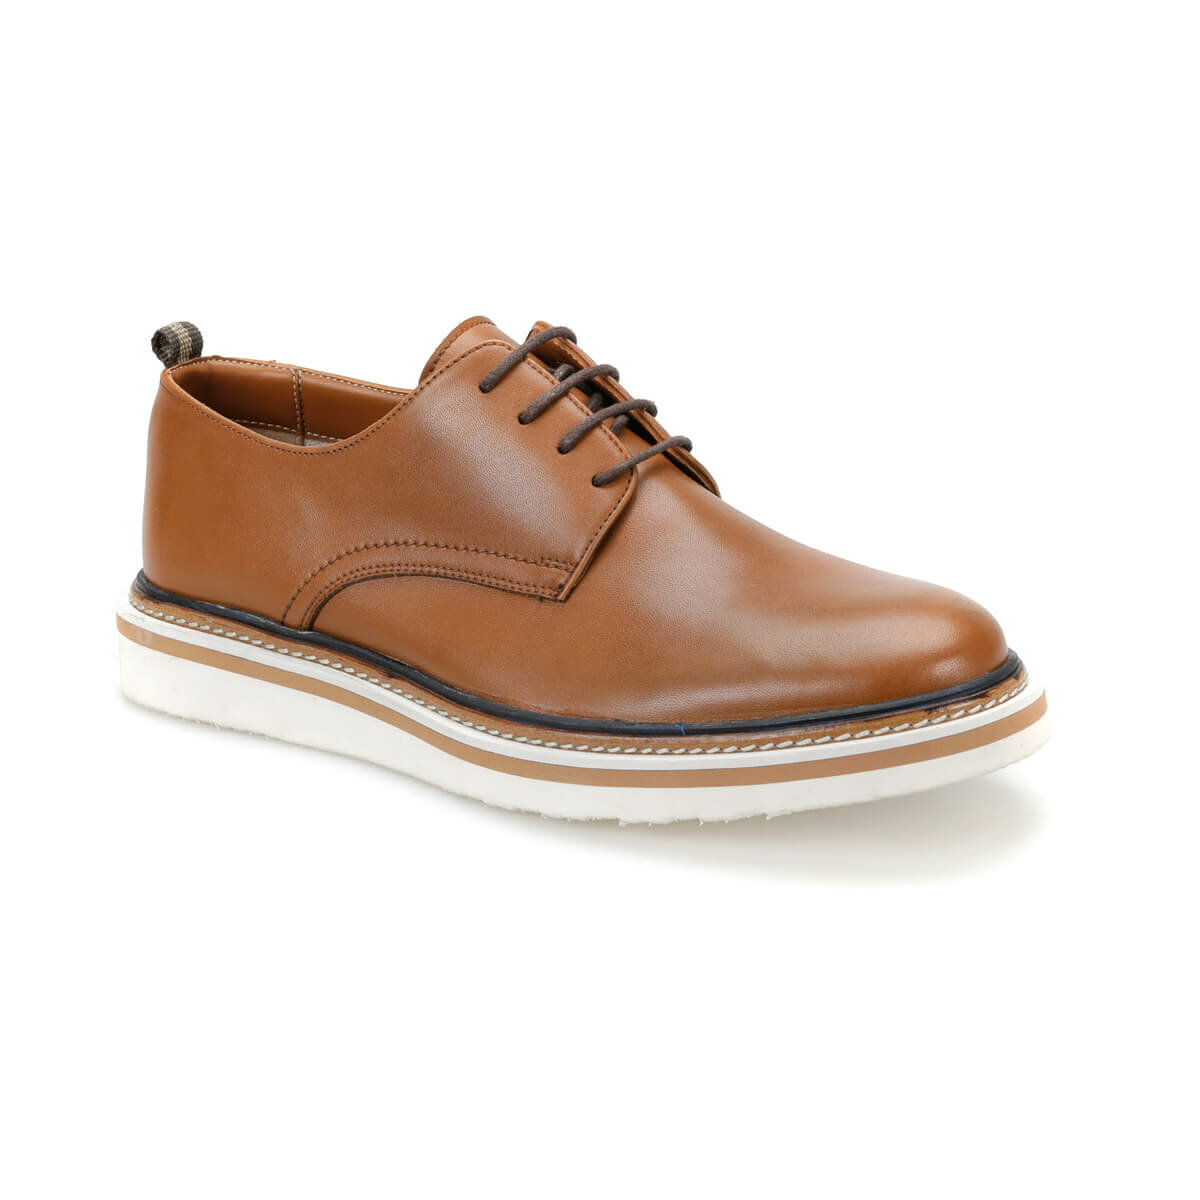 FLO 7180 Tan Men 'S Classic Shoes JJ-Stiller